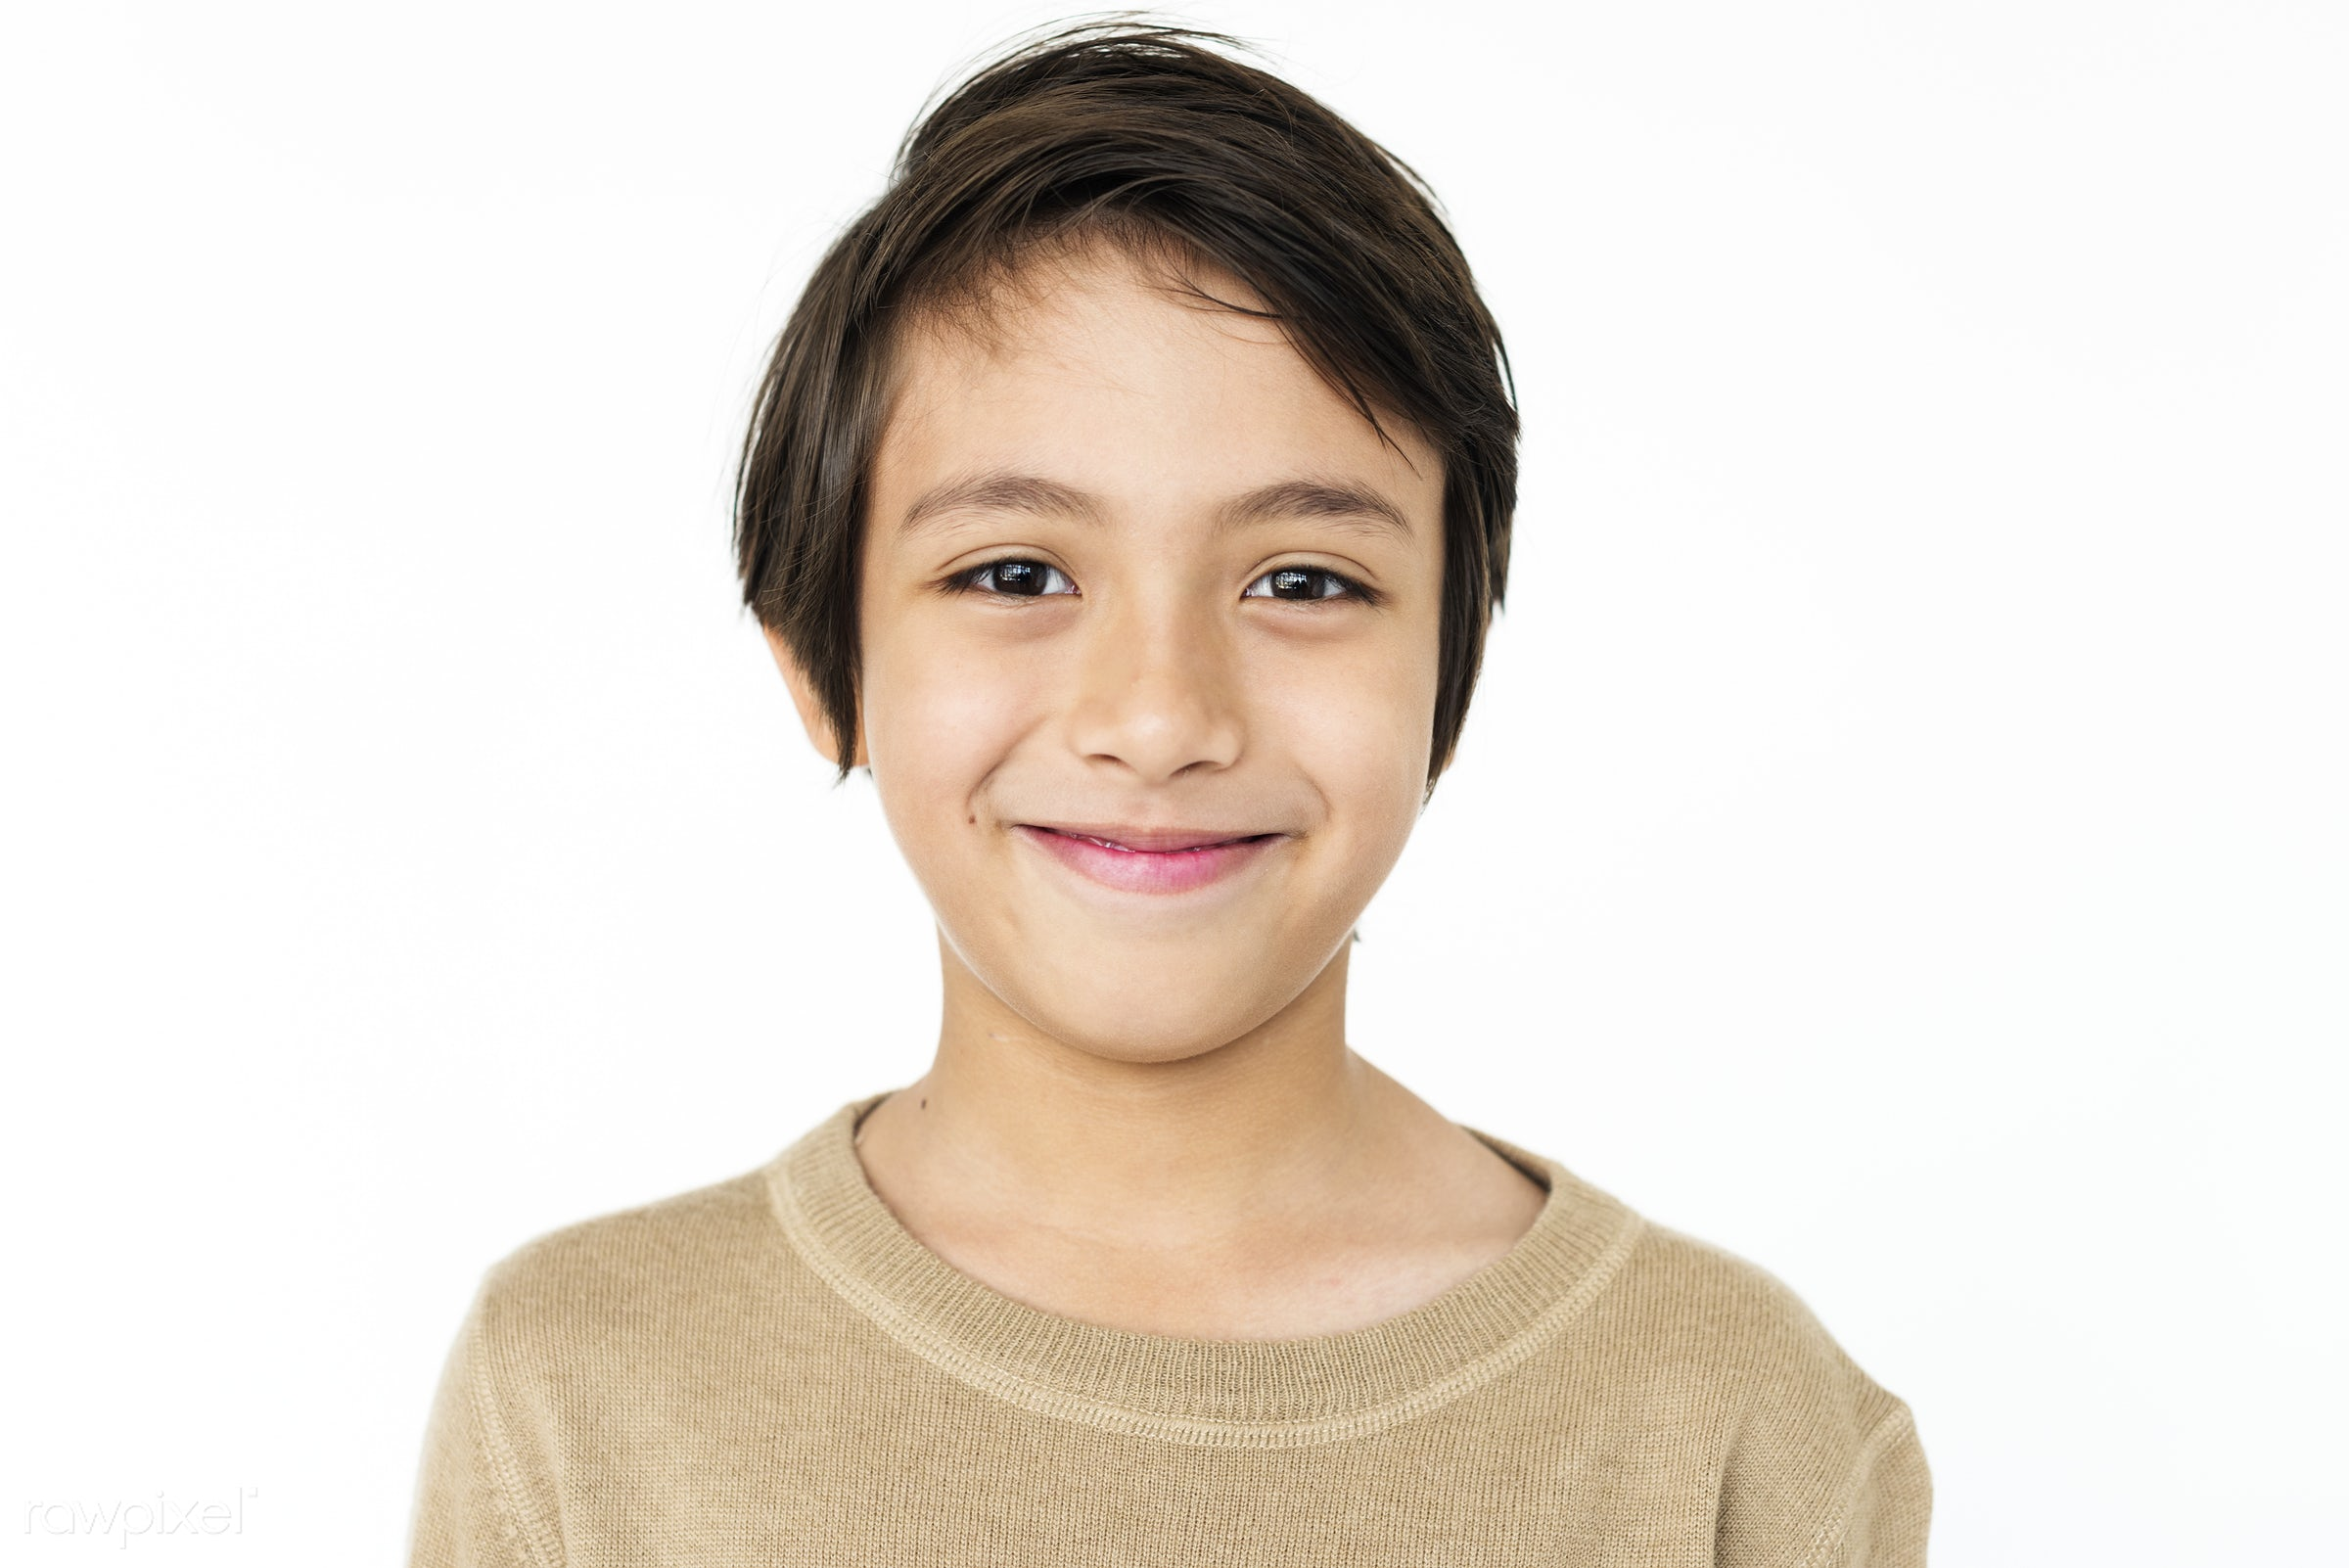 studio, expression, person, people, asian, kid, student, relaxed, teenager, smile, cheerful, smiling, isolated, teen, white...